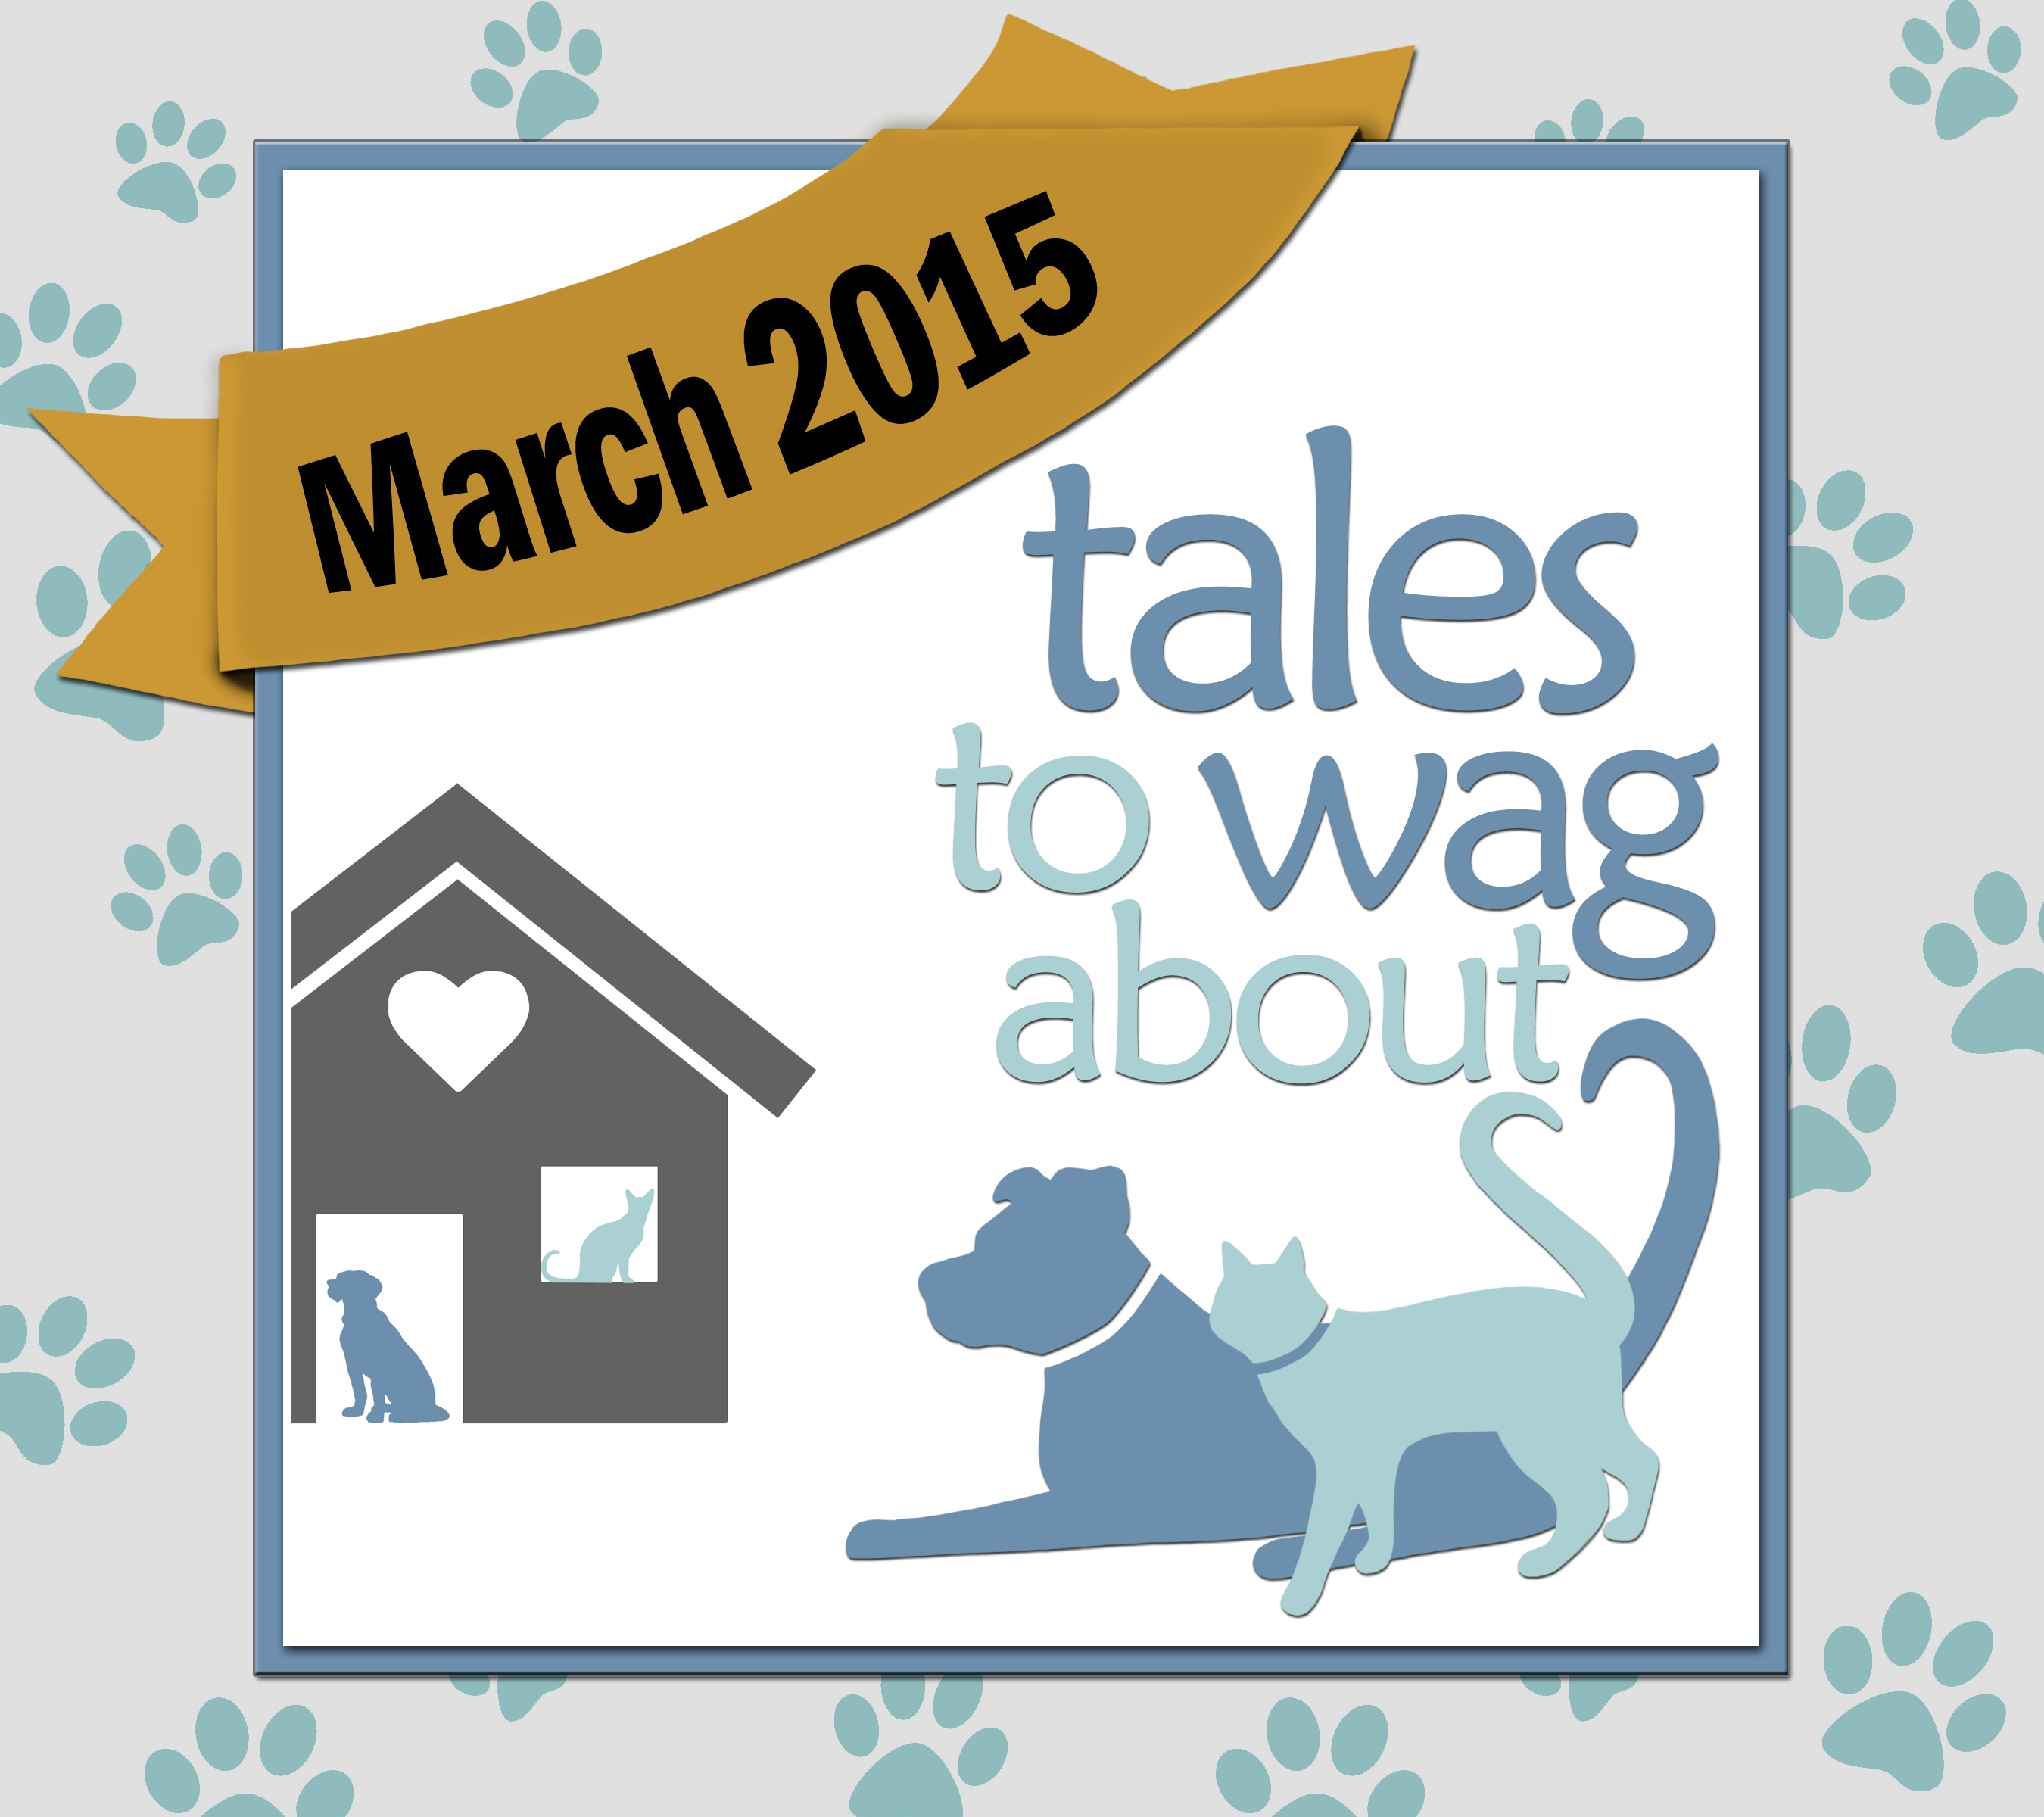 Tales to Wag About - Marchl 2015